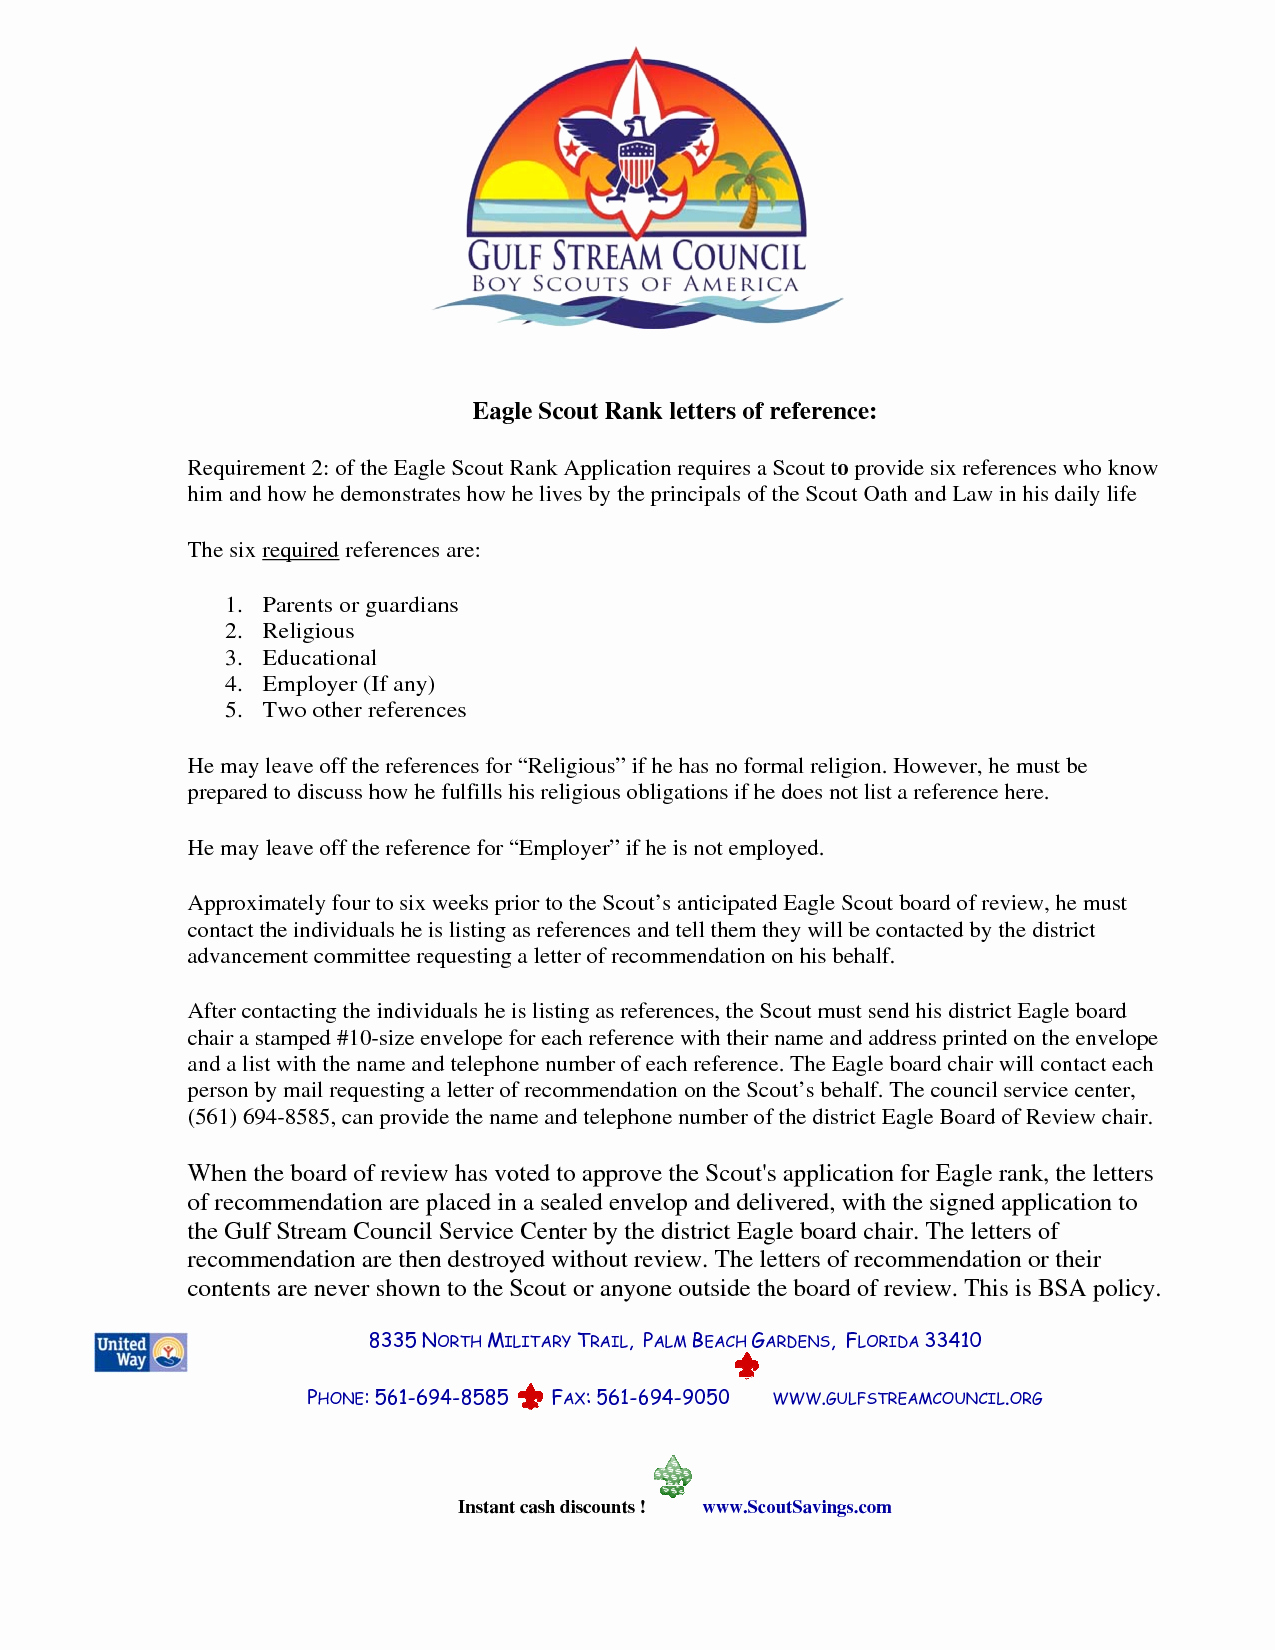 Eagle Letter Of Ambition Example Luxury Letter Re Mendation for Eagle Scout From Parent